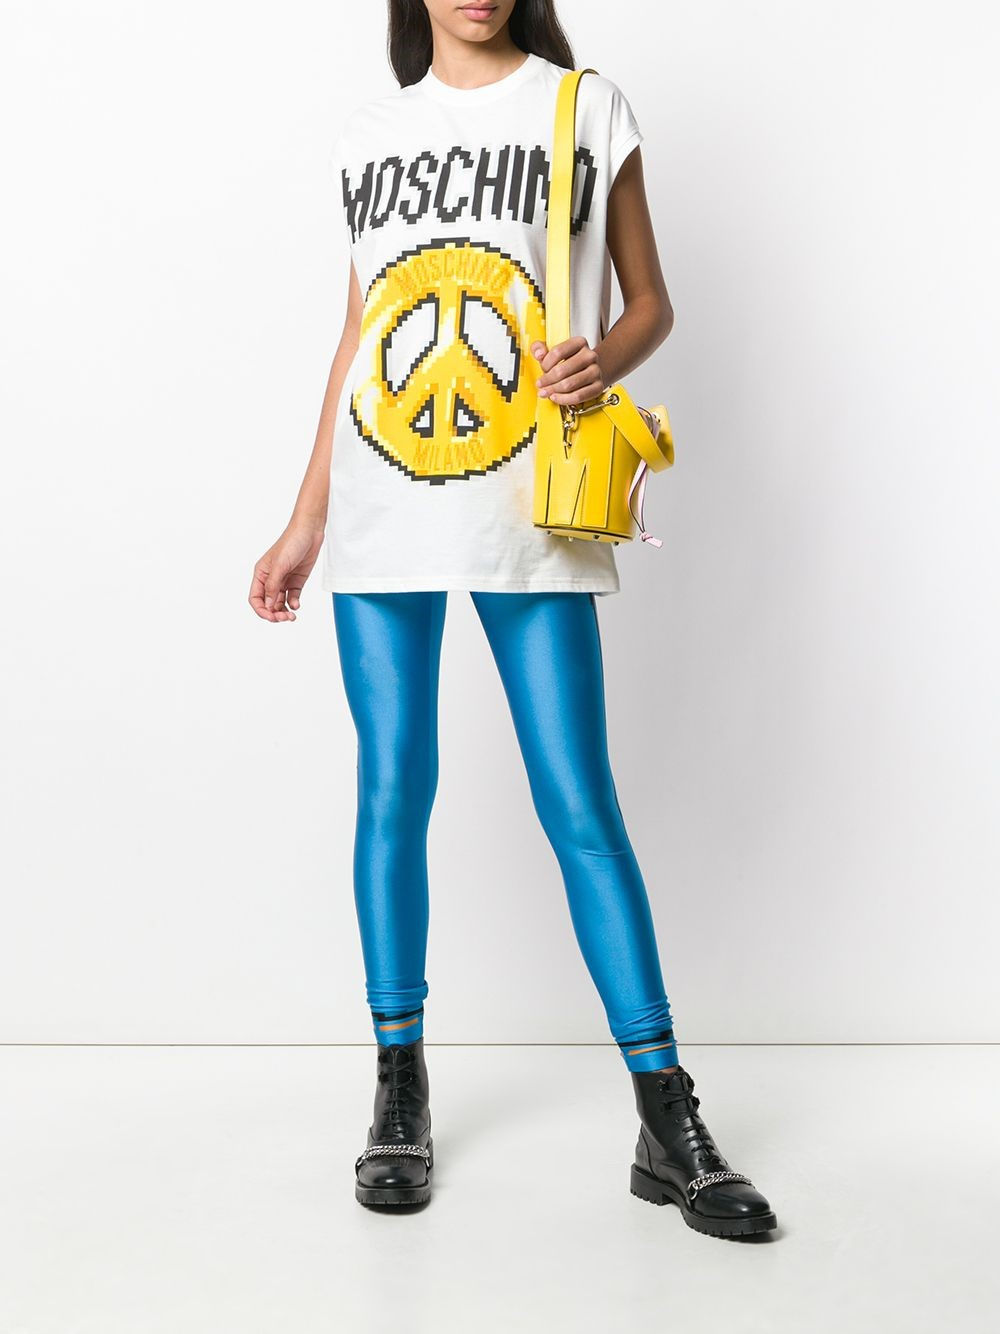 05c67096276d moschino PIXEL CAPSULE T-SHIRT available on montiboutique.com - 28118